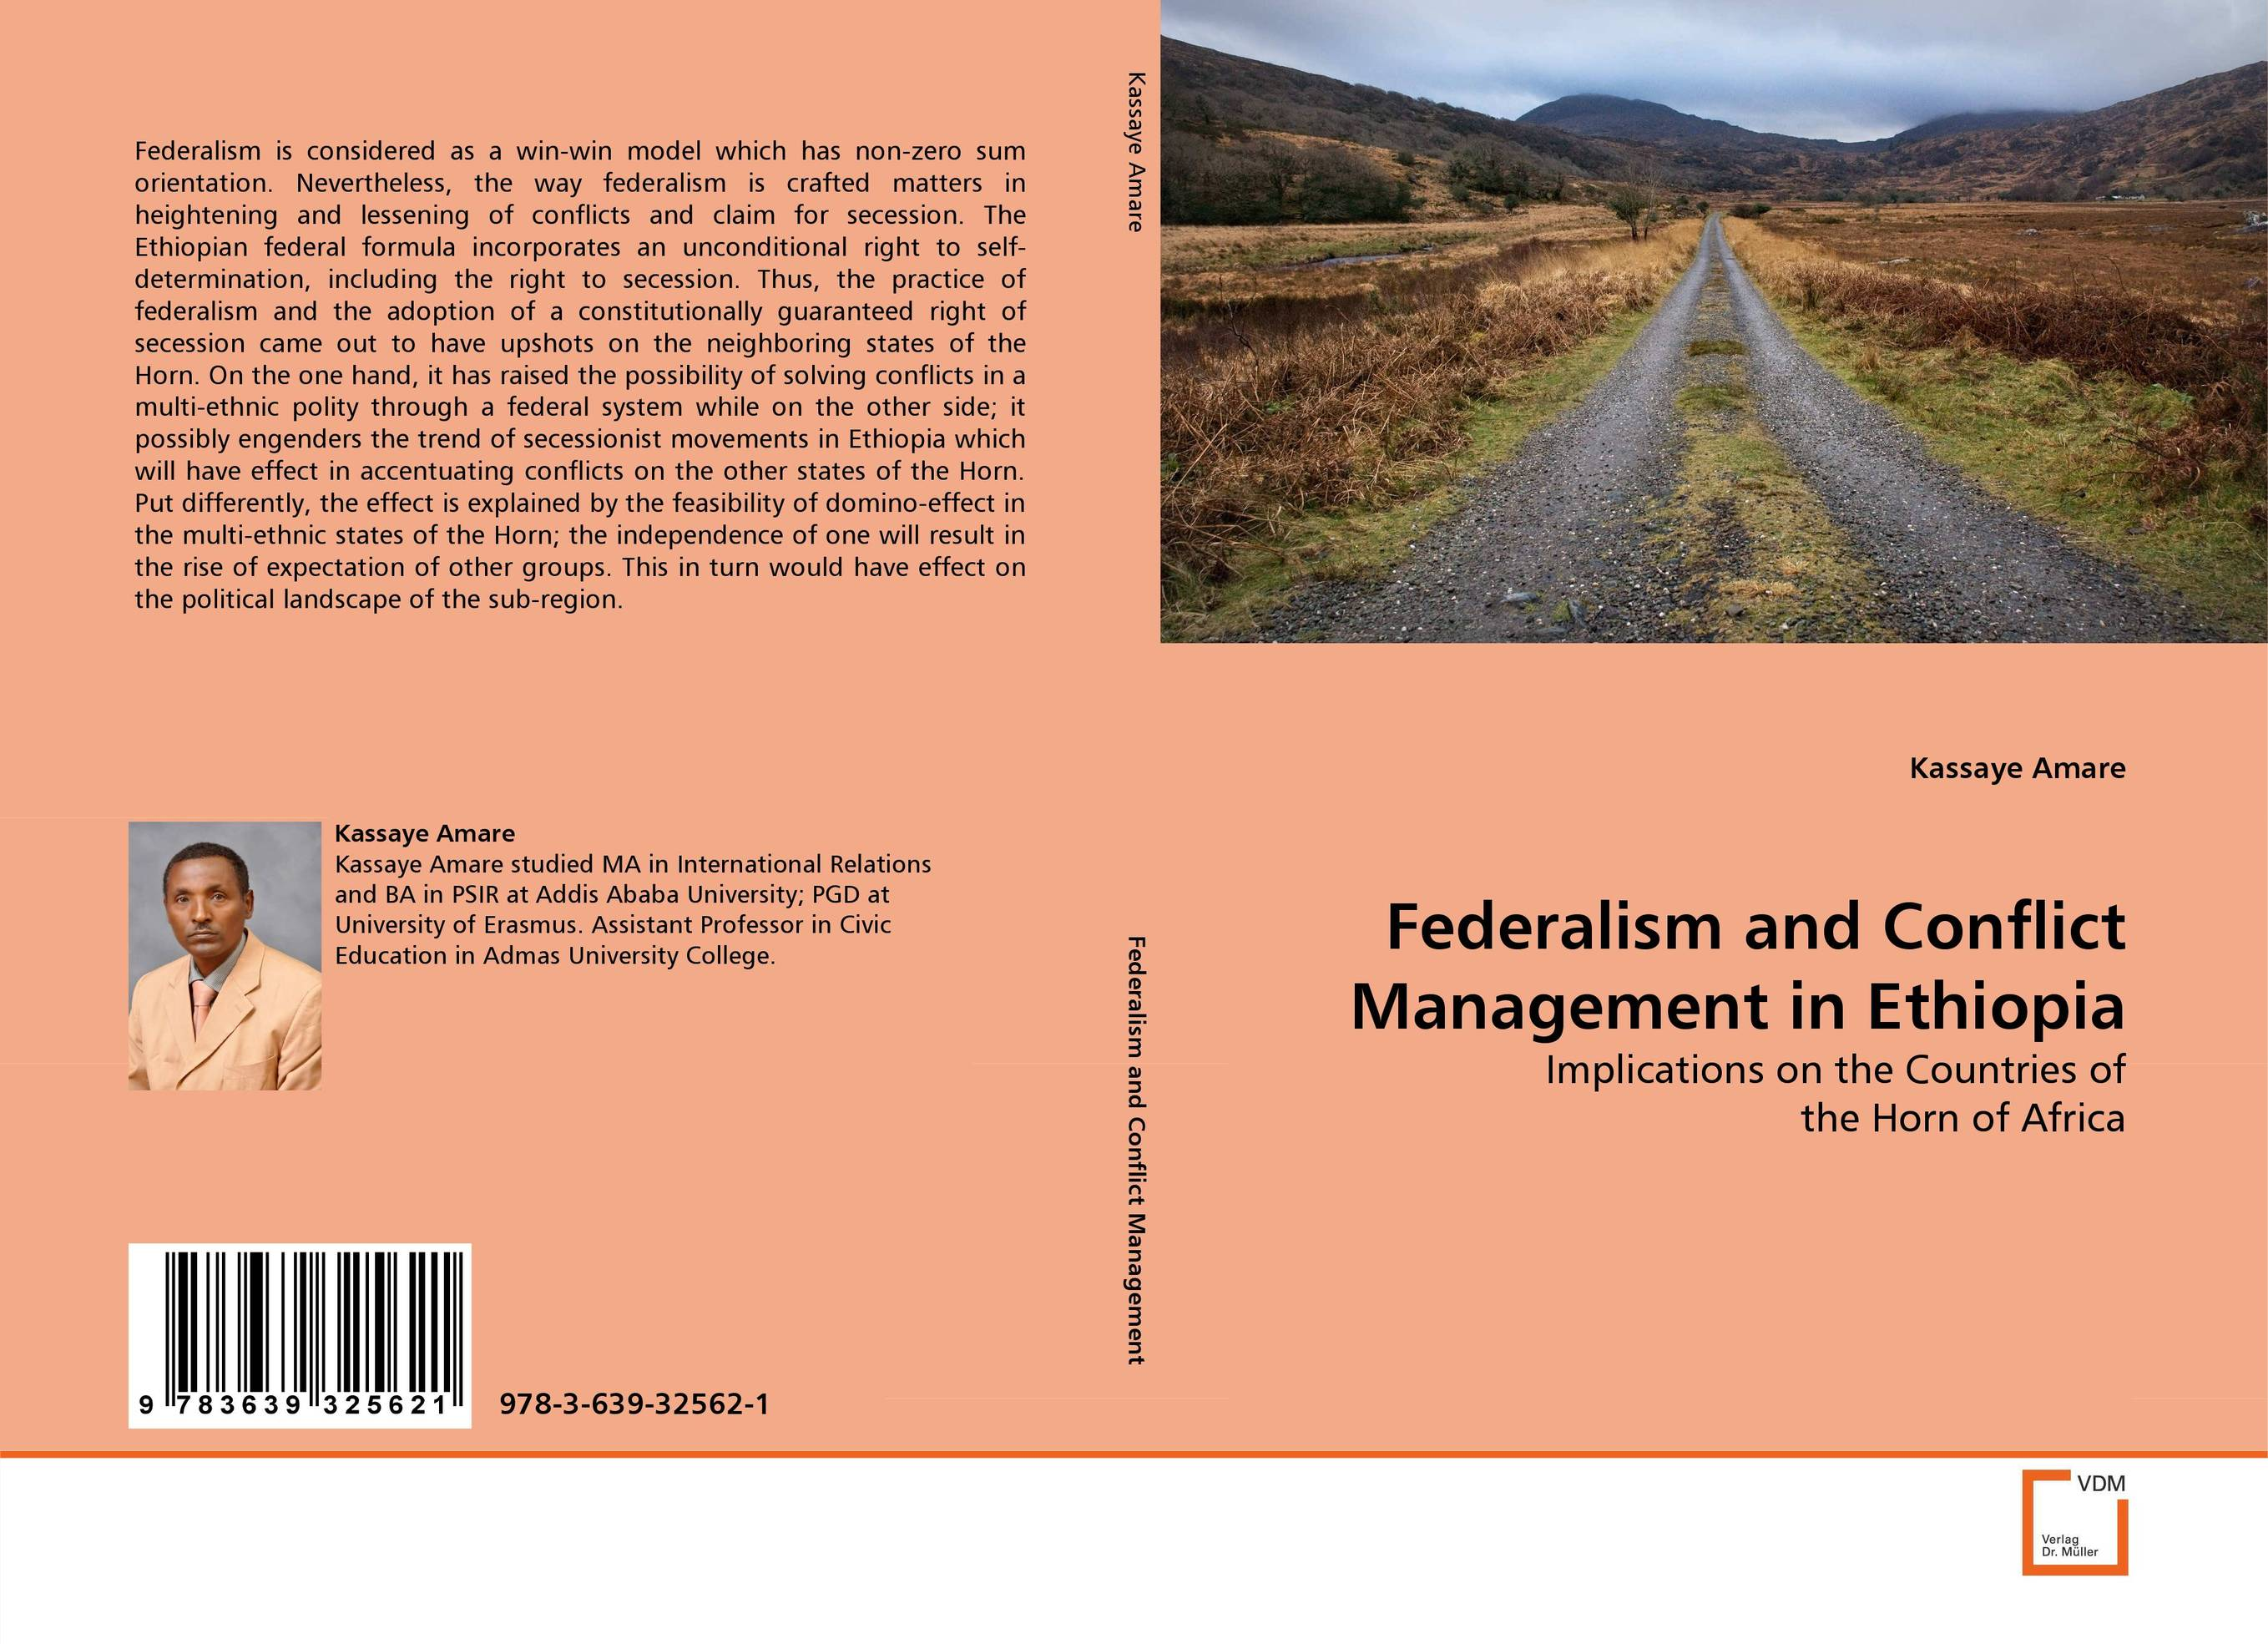 Federalism and Conflict Management in Ethiopia